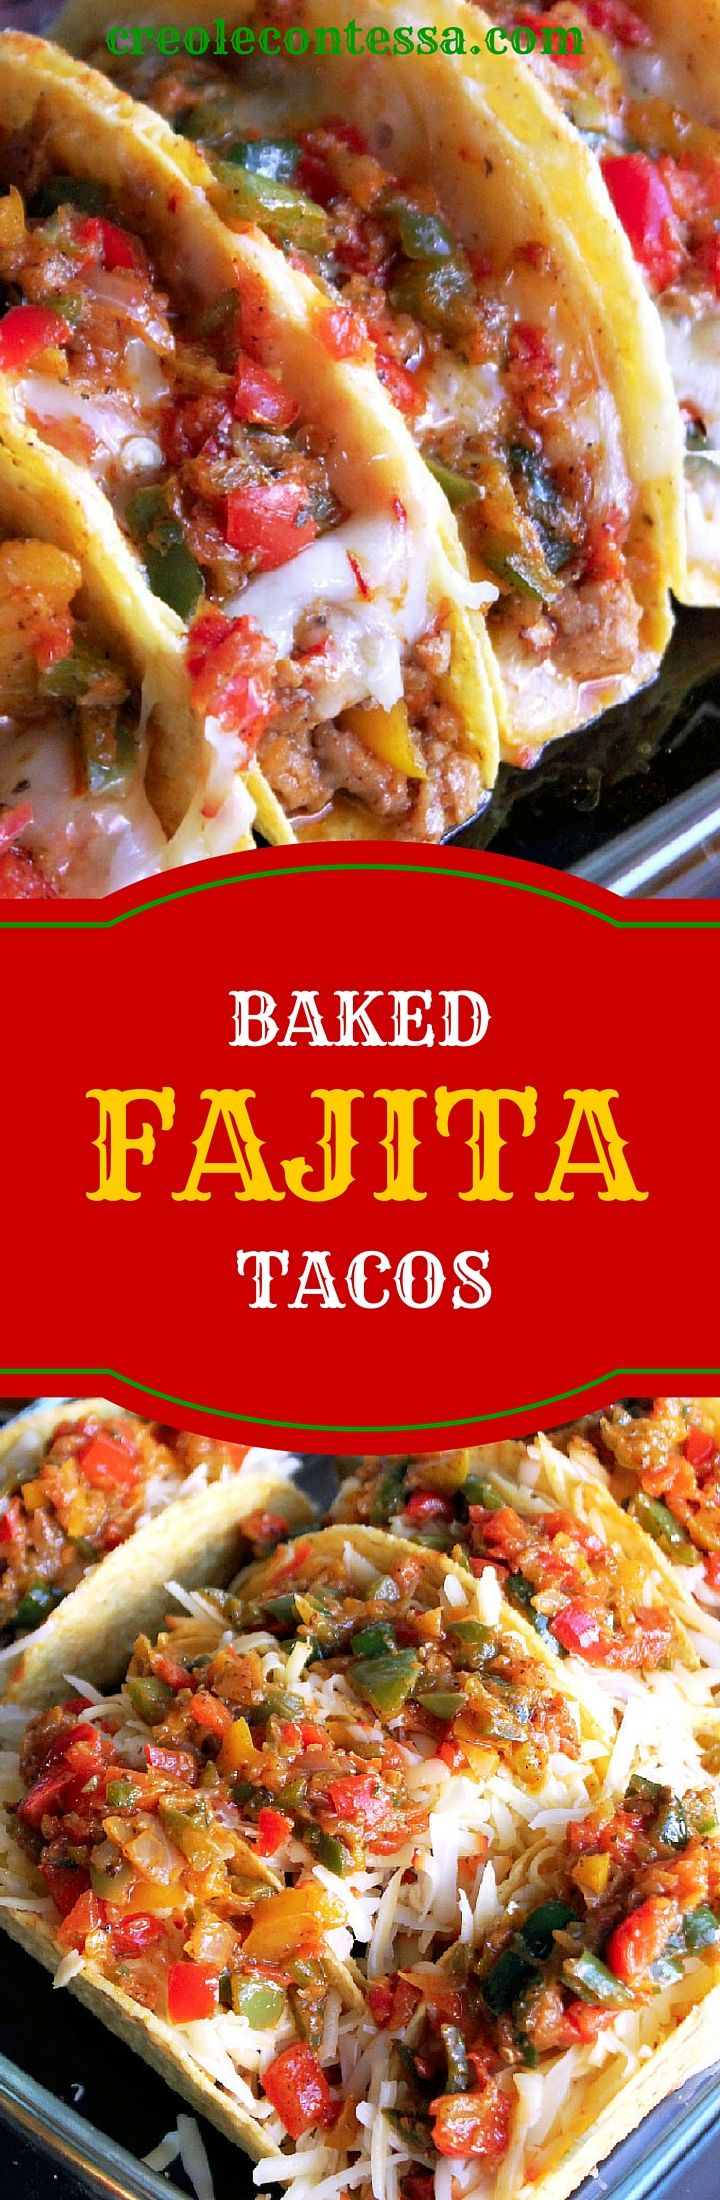 Creole Contessa's Baked Fajita Tacos are the perfect way to spice up your OXO Glass Bakeware.